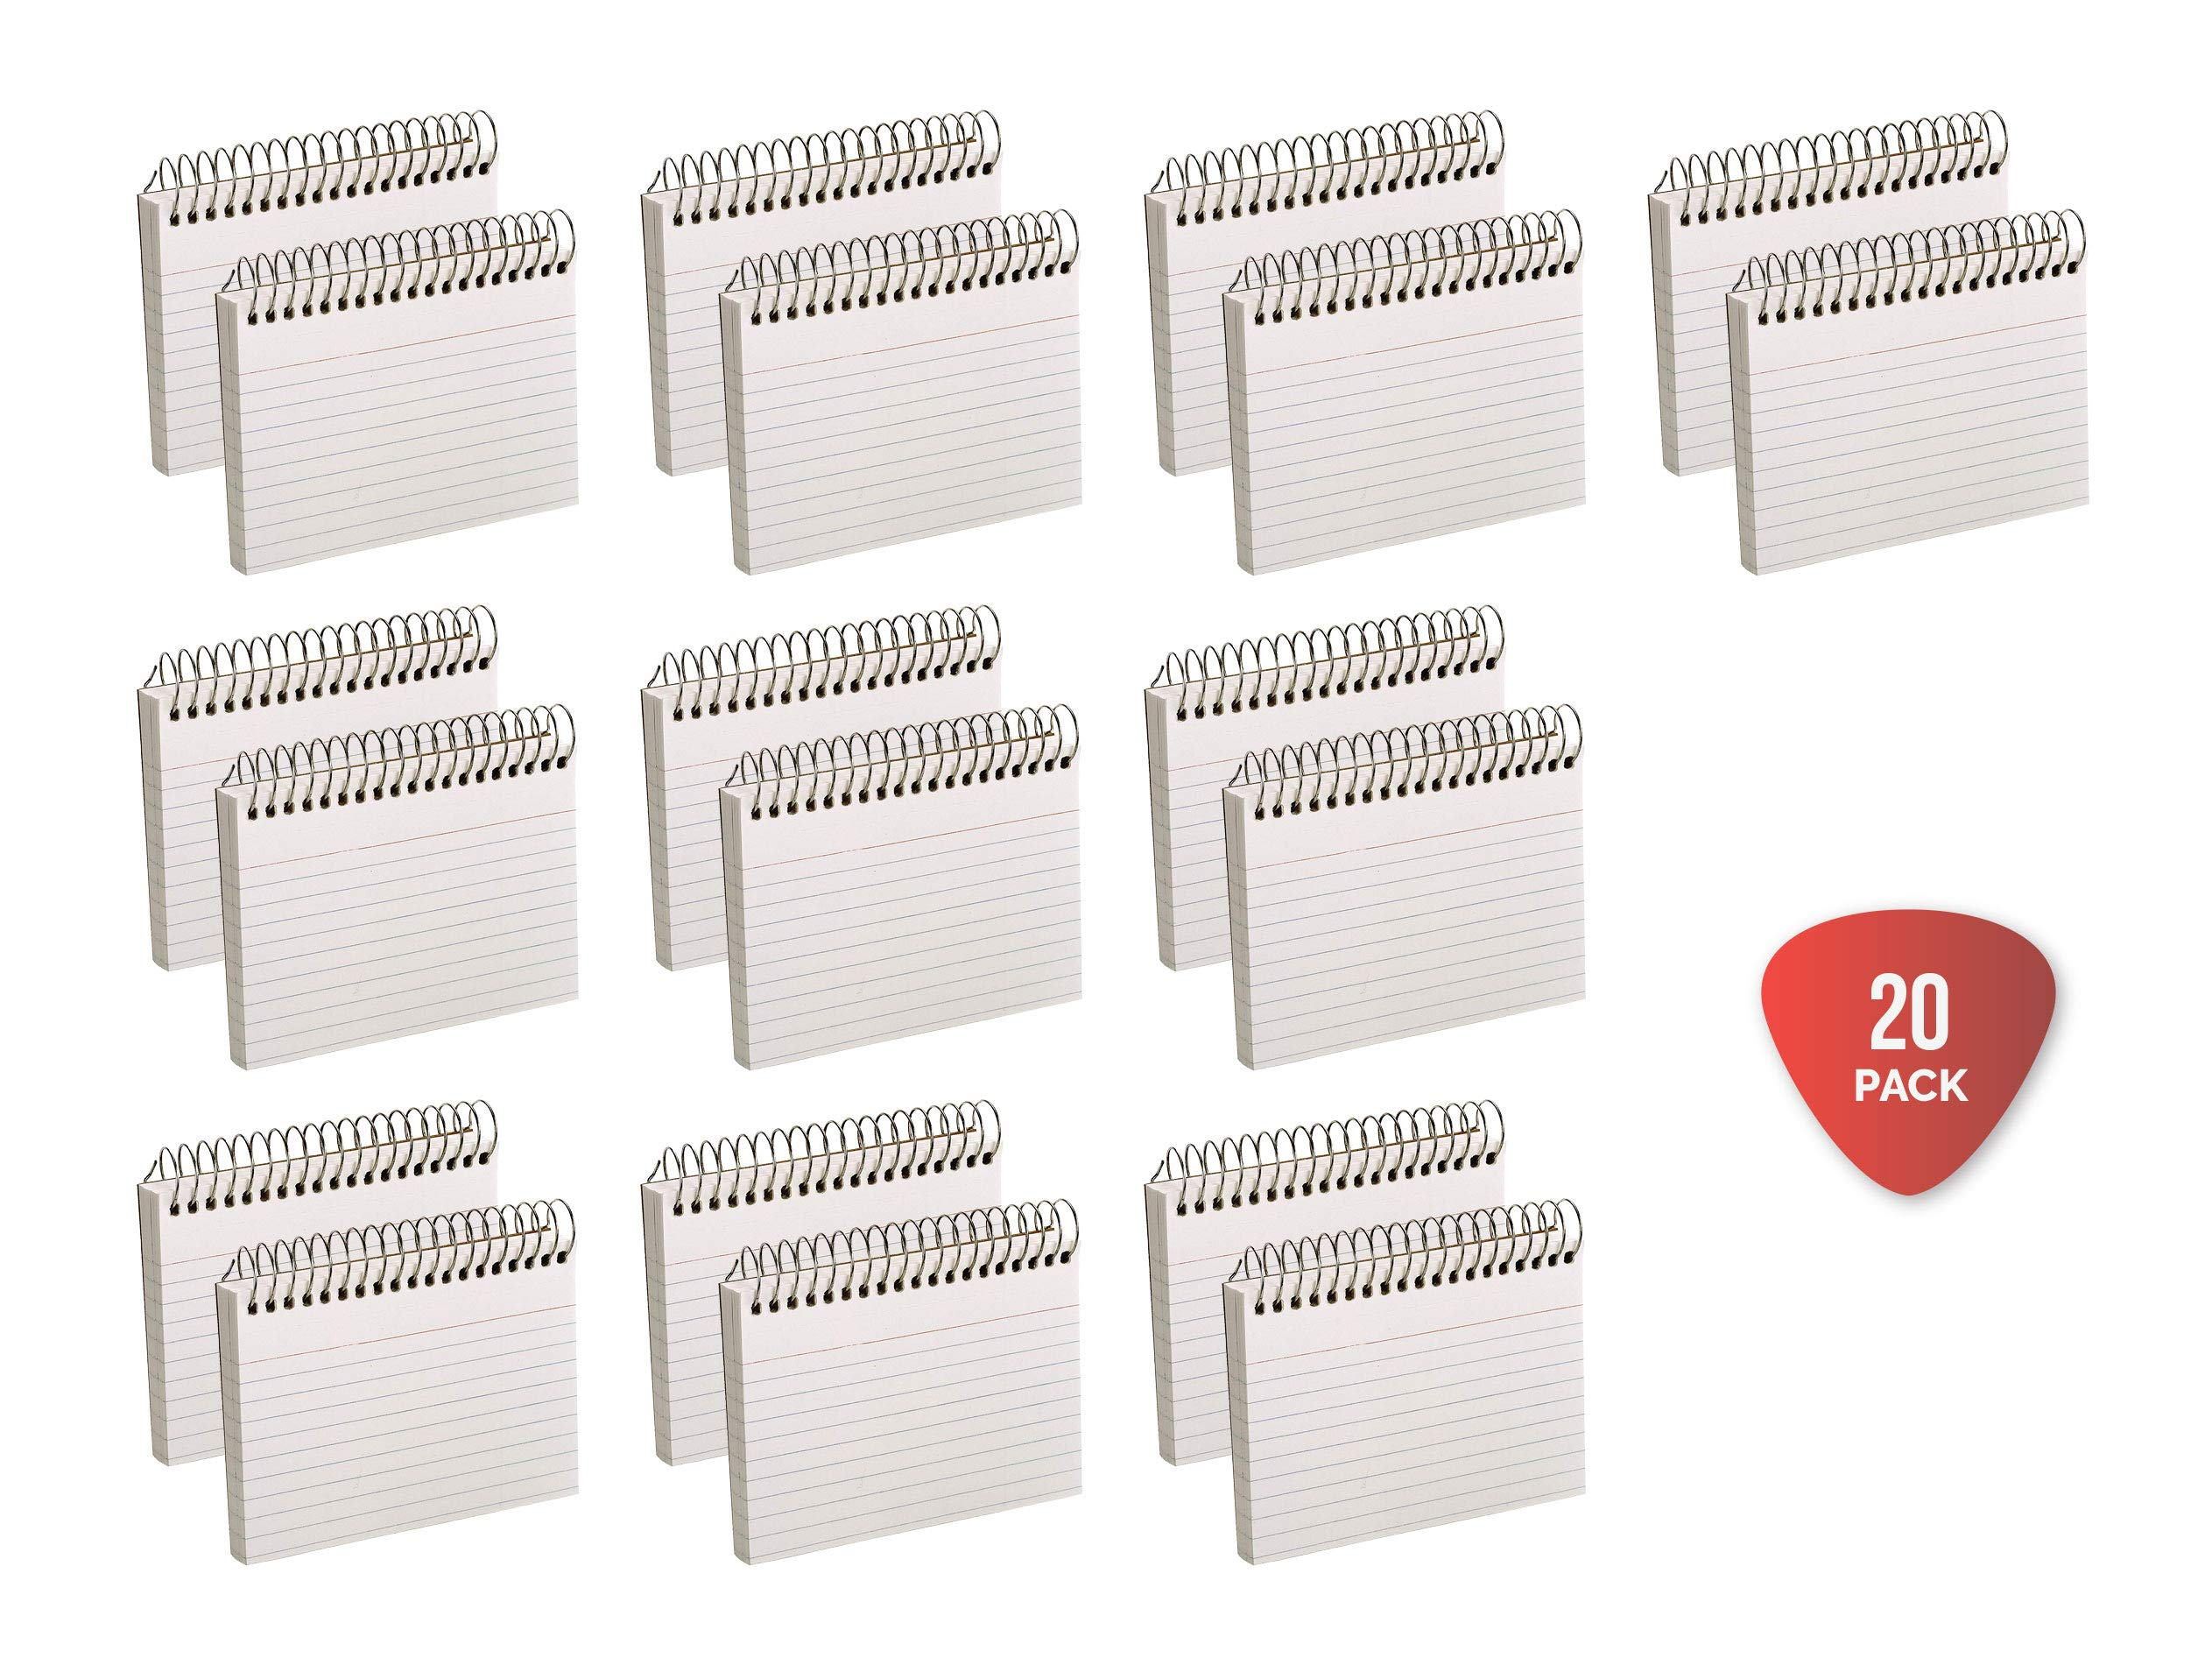 Oxford Spiral Ruled Index Cards, 3 x 5 Inches, White, 50 per Pack (40282), Pack of 20 by Oxford